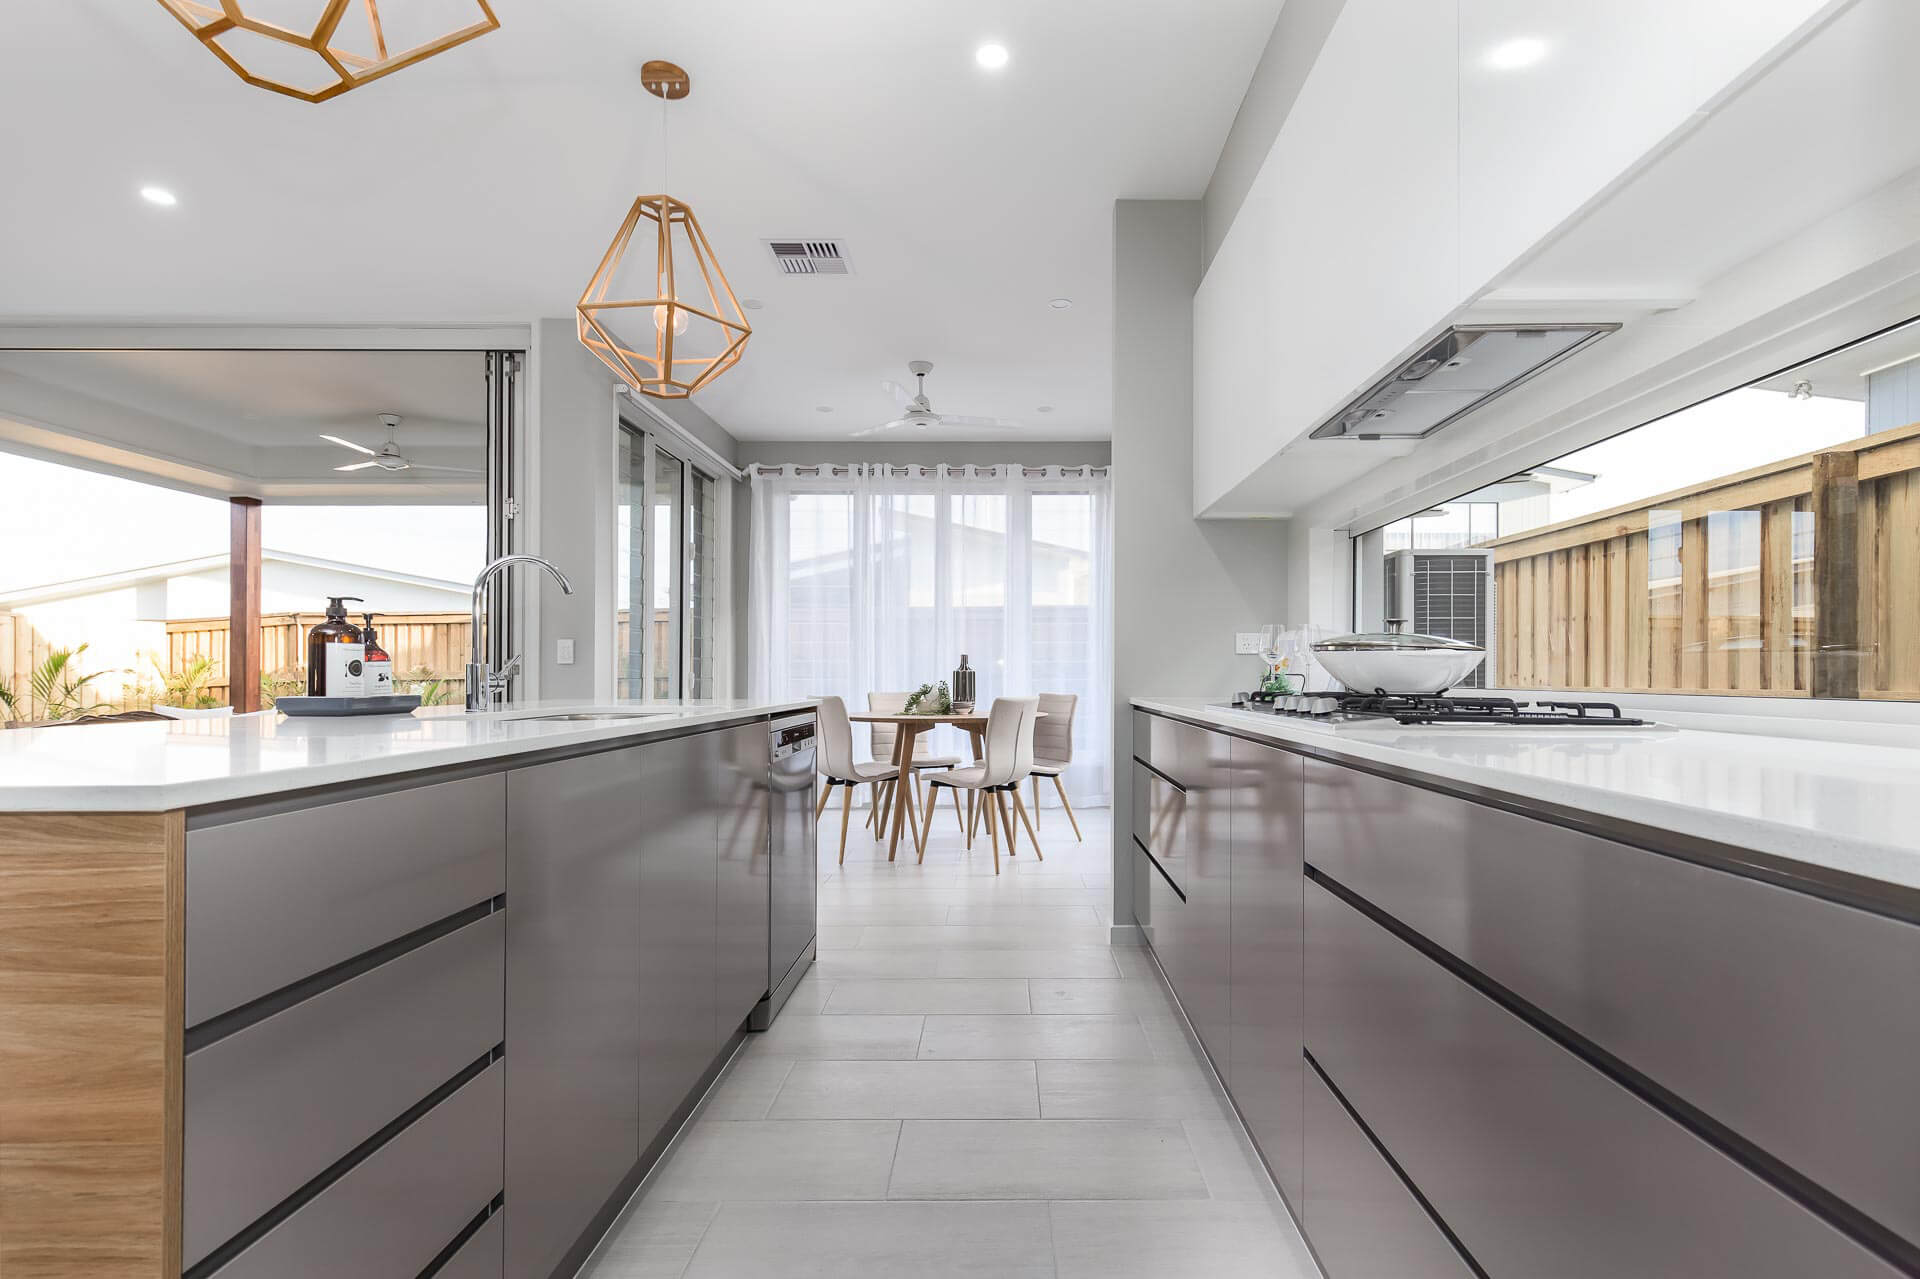 Kitchen Renovation Cost Estimator - Brisbane, Gold Coast